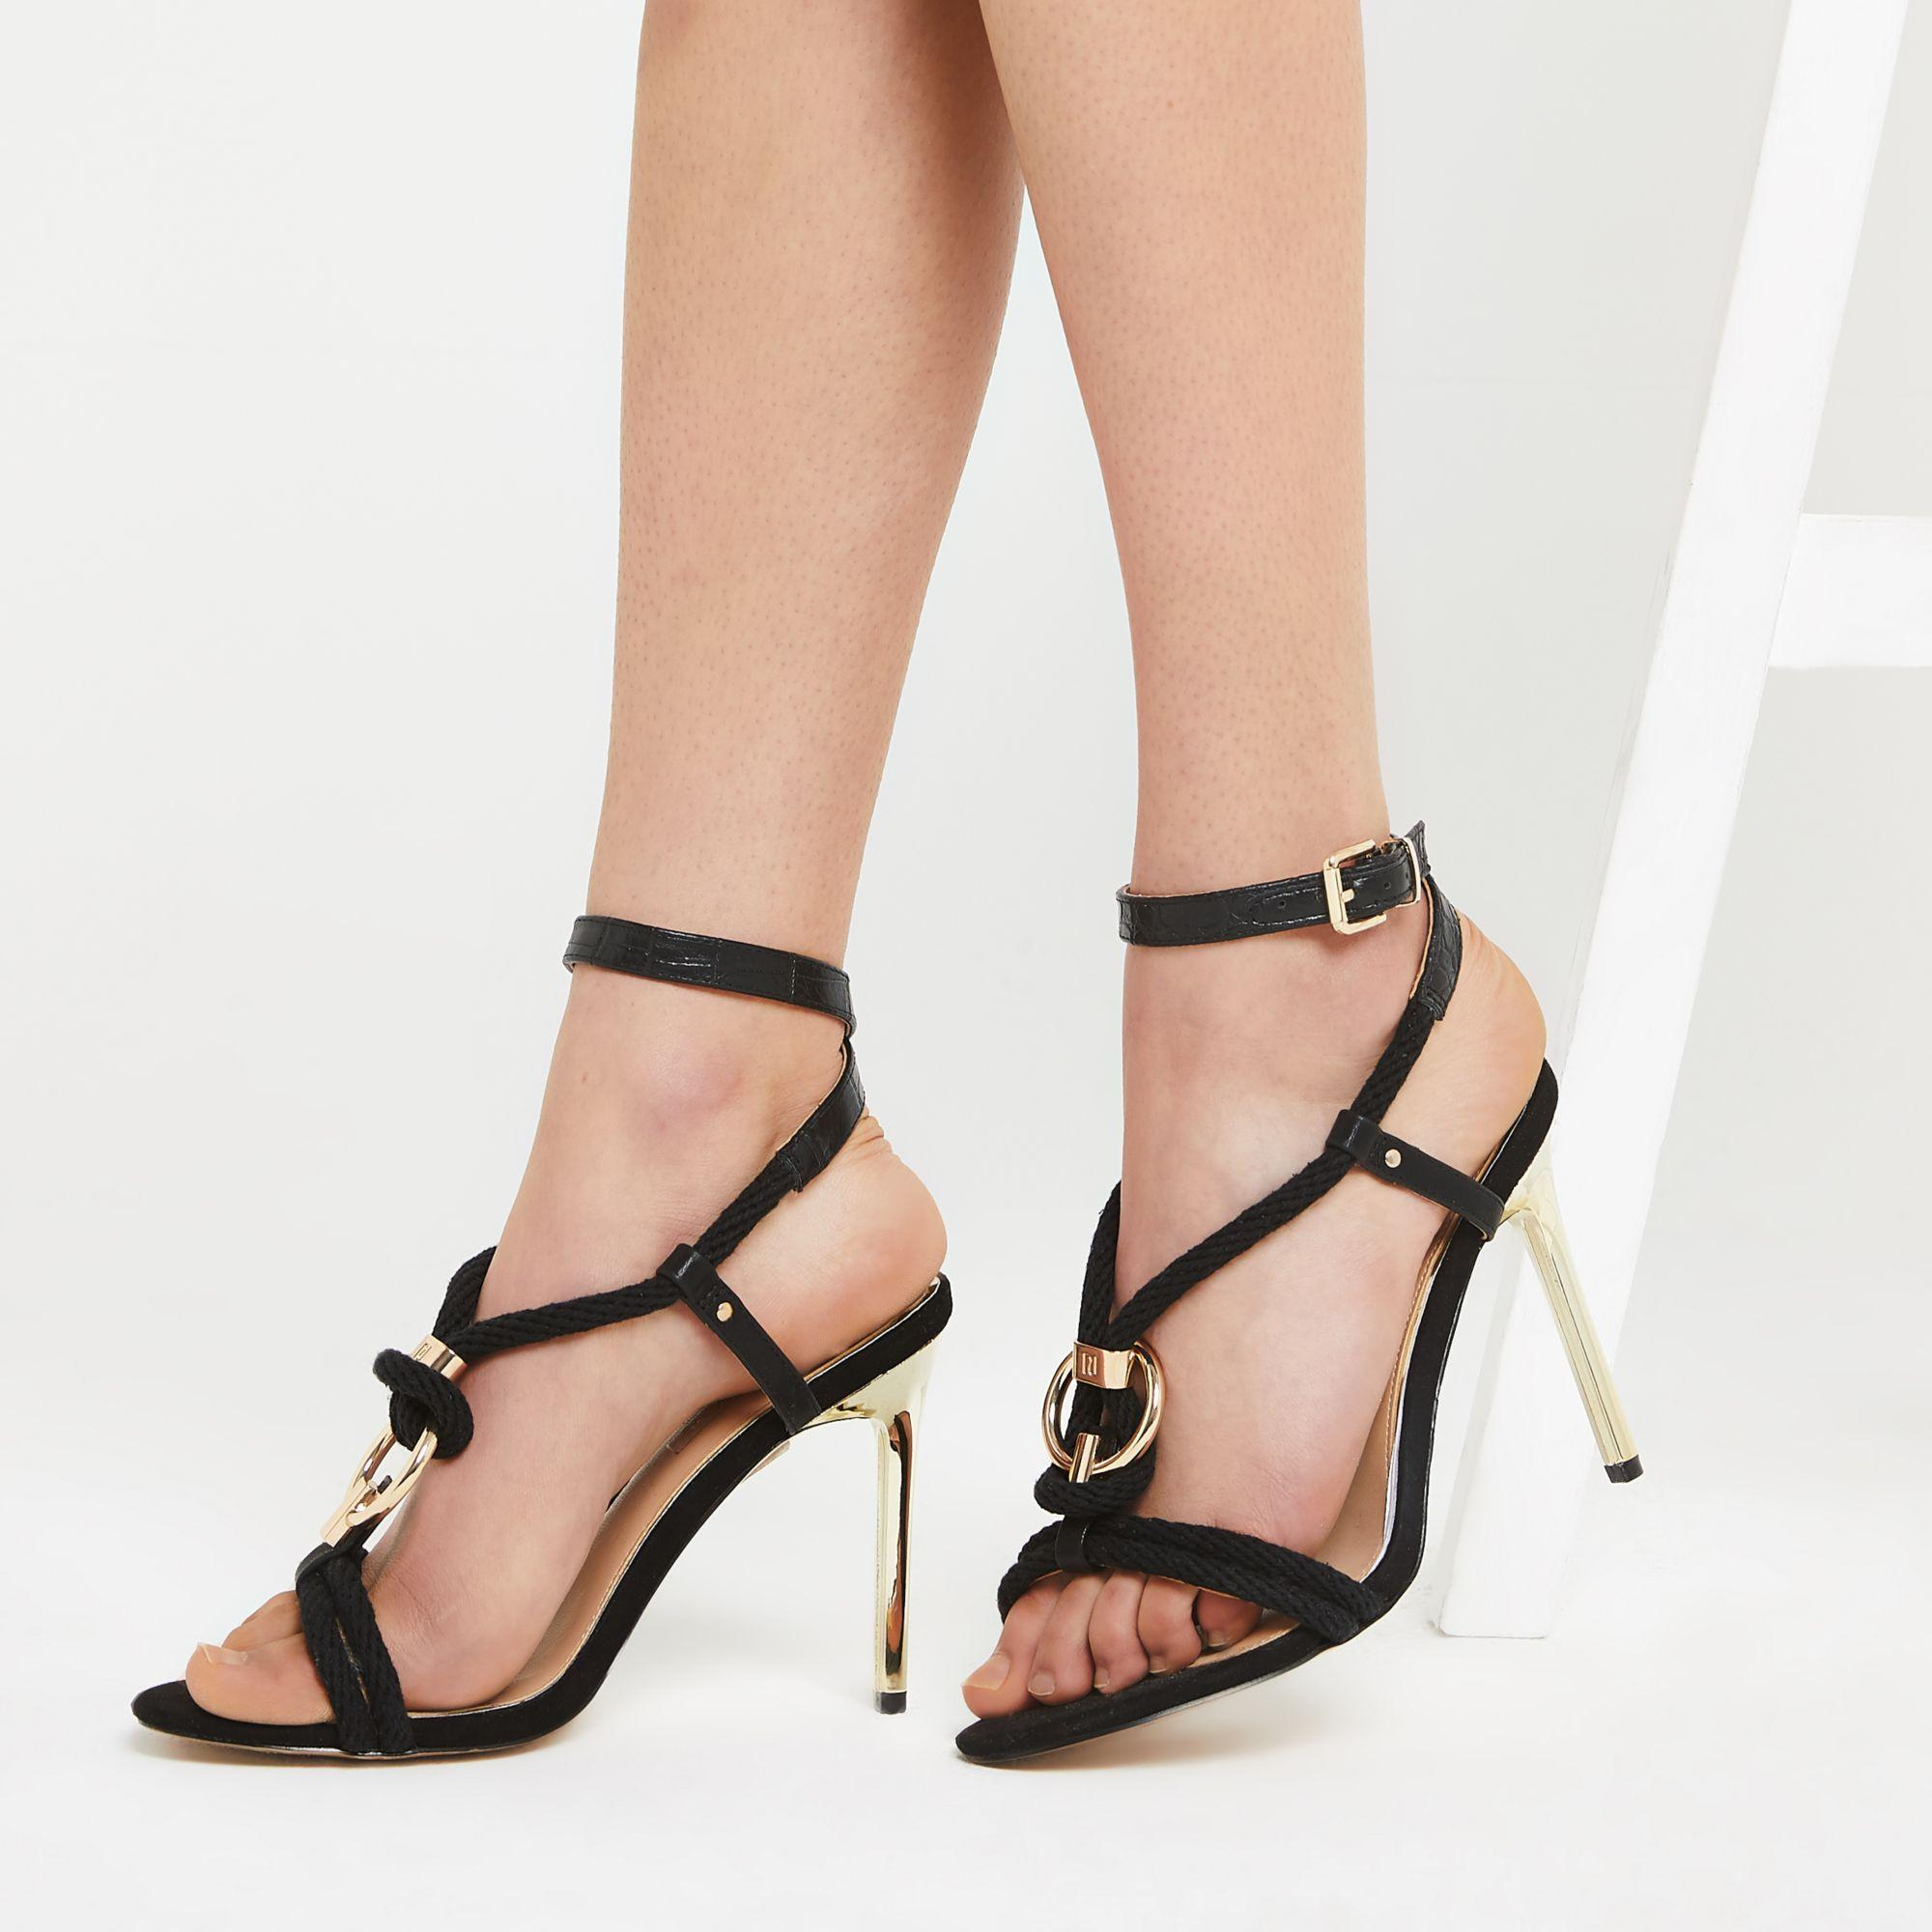 15b2571dca2 ... Black Rope Ring Stiletto Heel Sandals - Lyst. View fullscreen